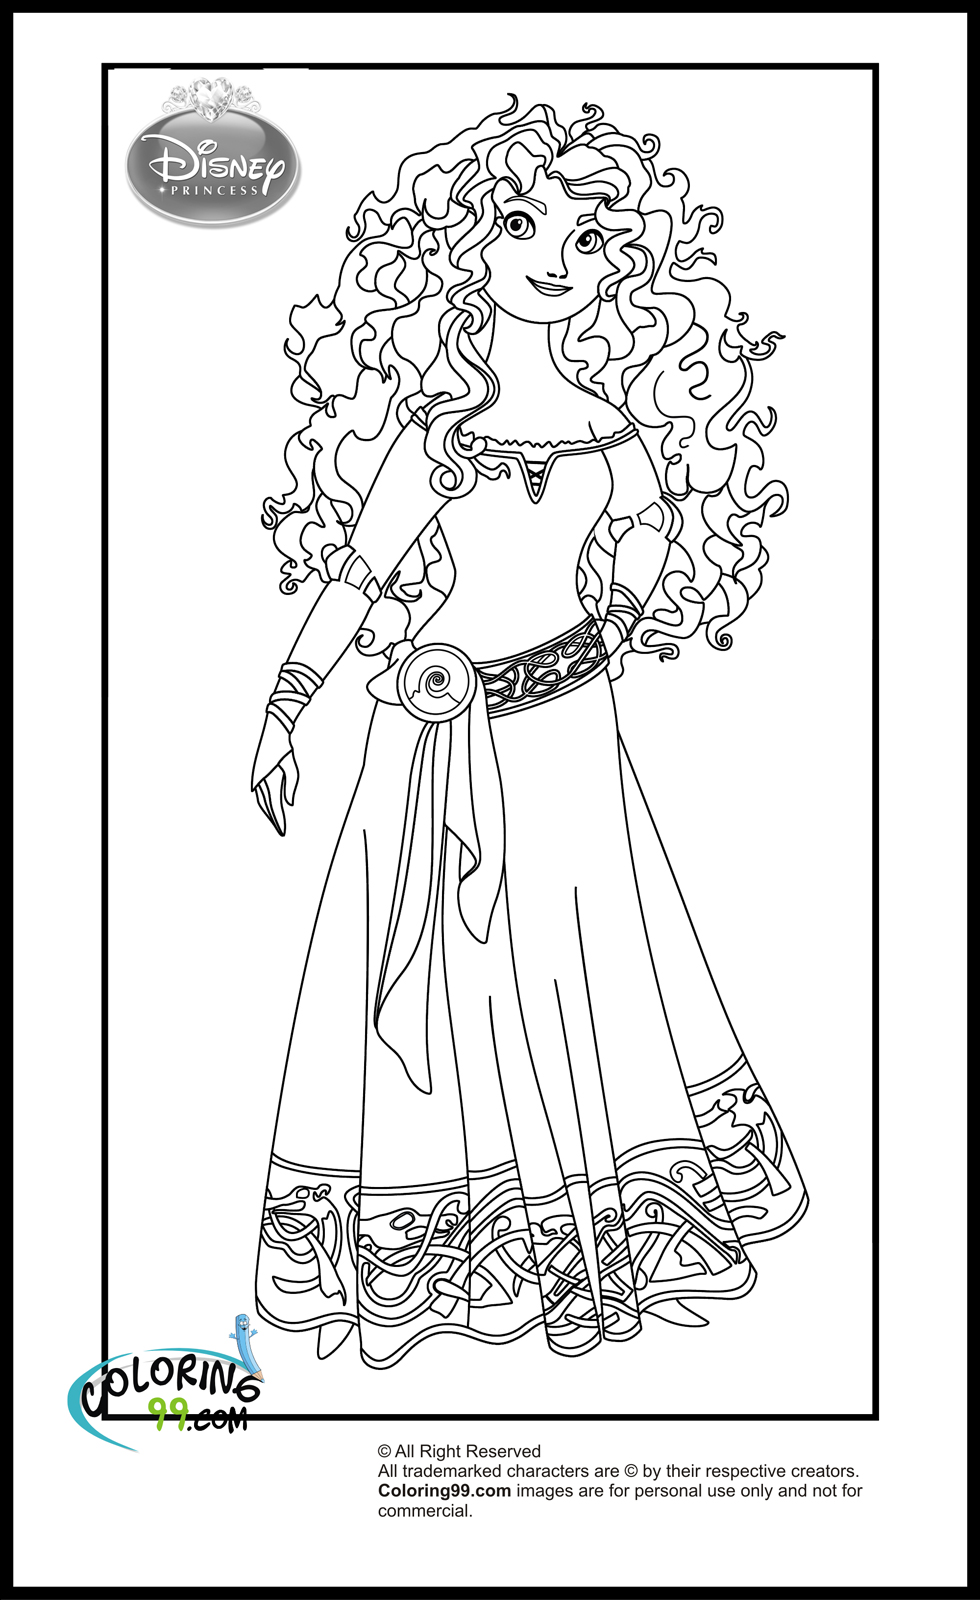 Fans Request Disney Princess With Merida From Brave Coloring